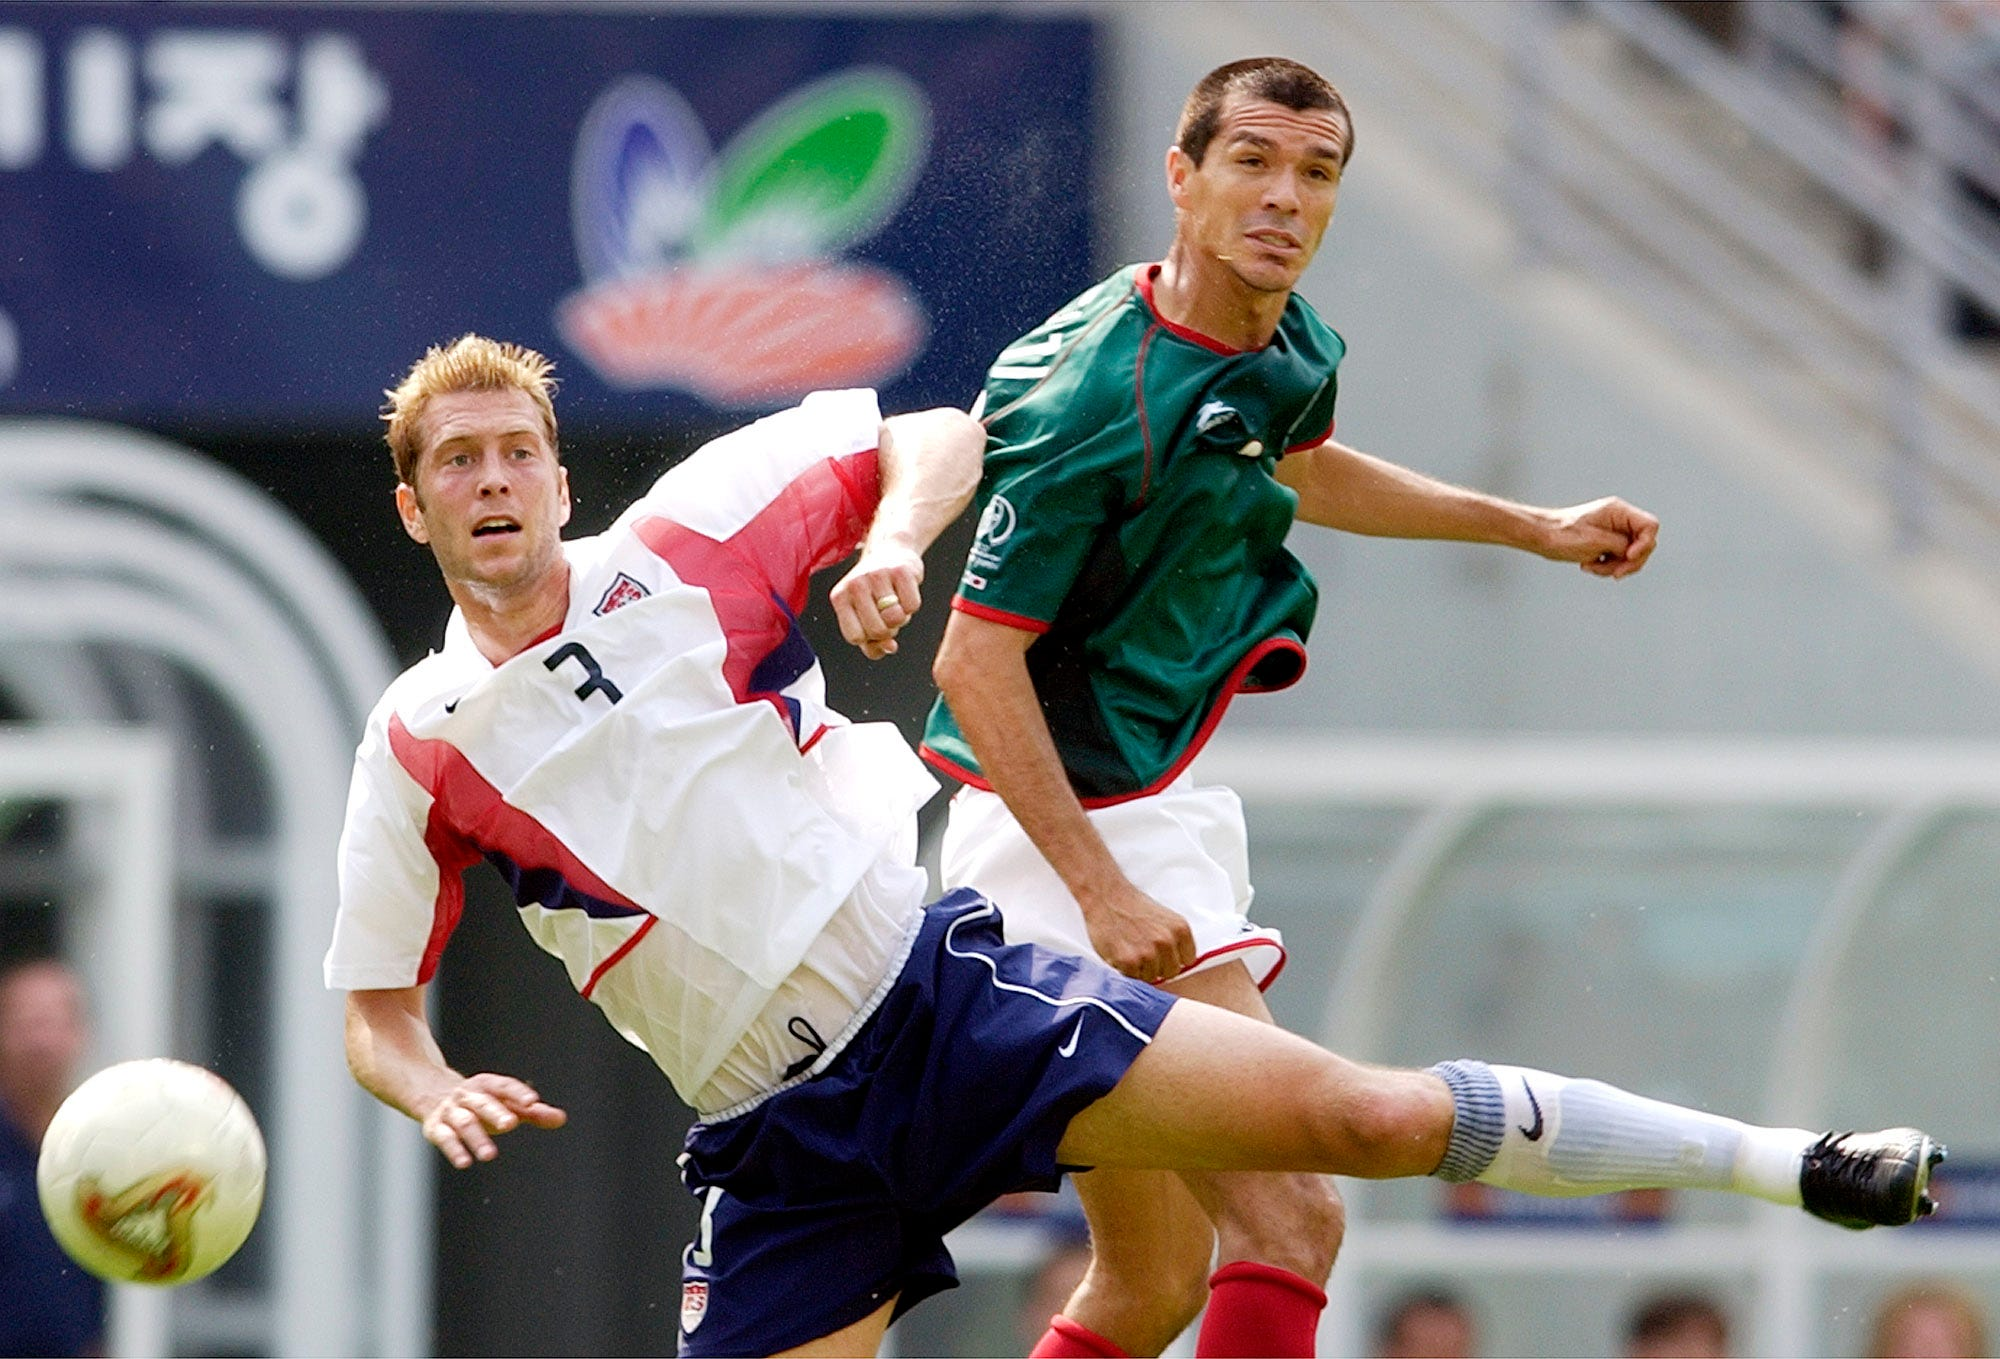 Gregg Berhalter played in the 2002 World Cup and was on the U.S. roster for the 2006 World Cup.